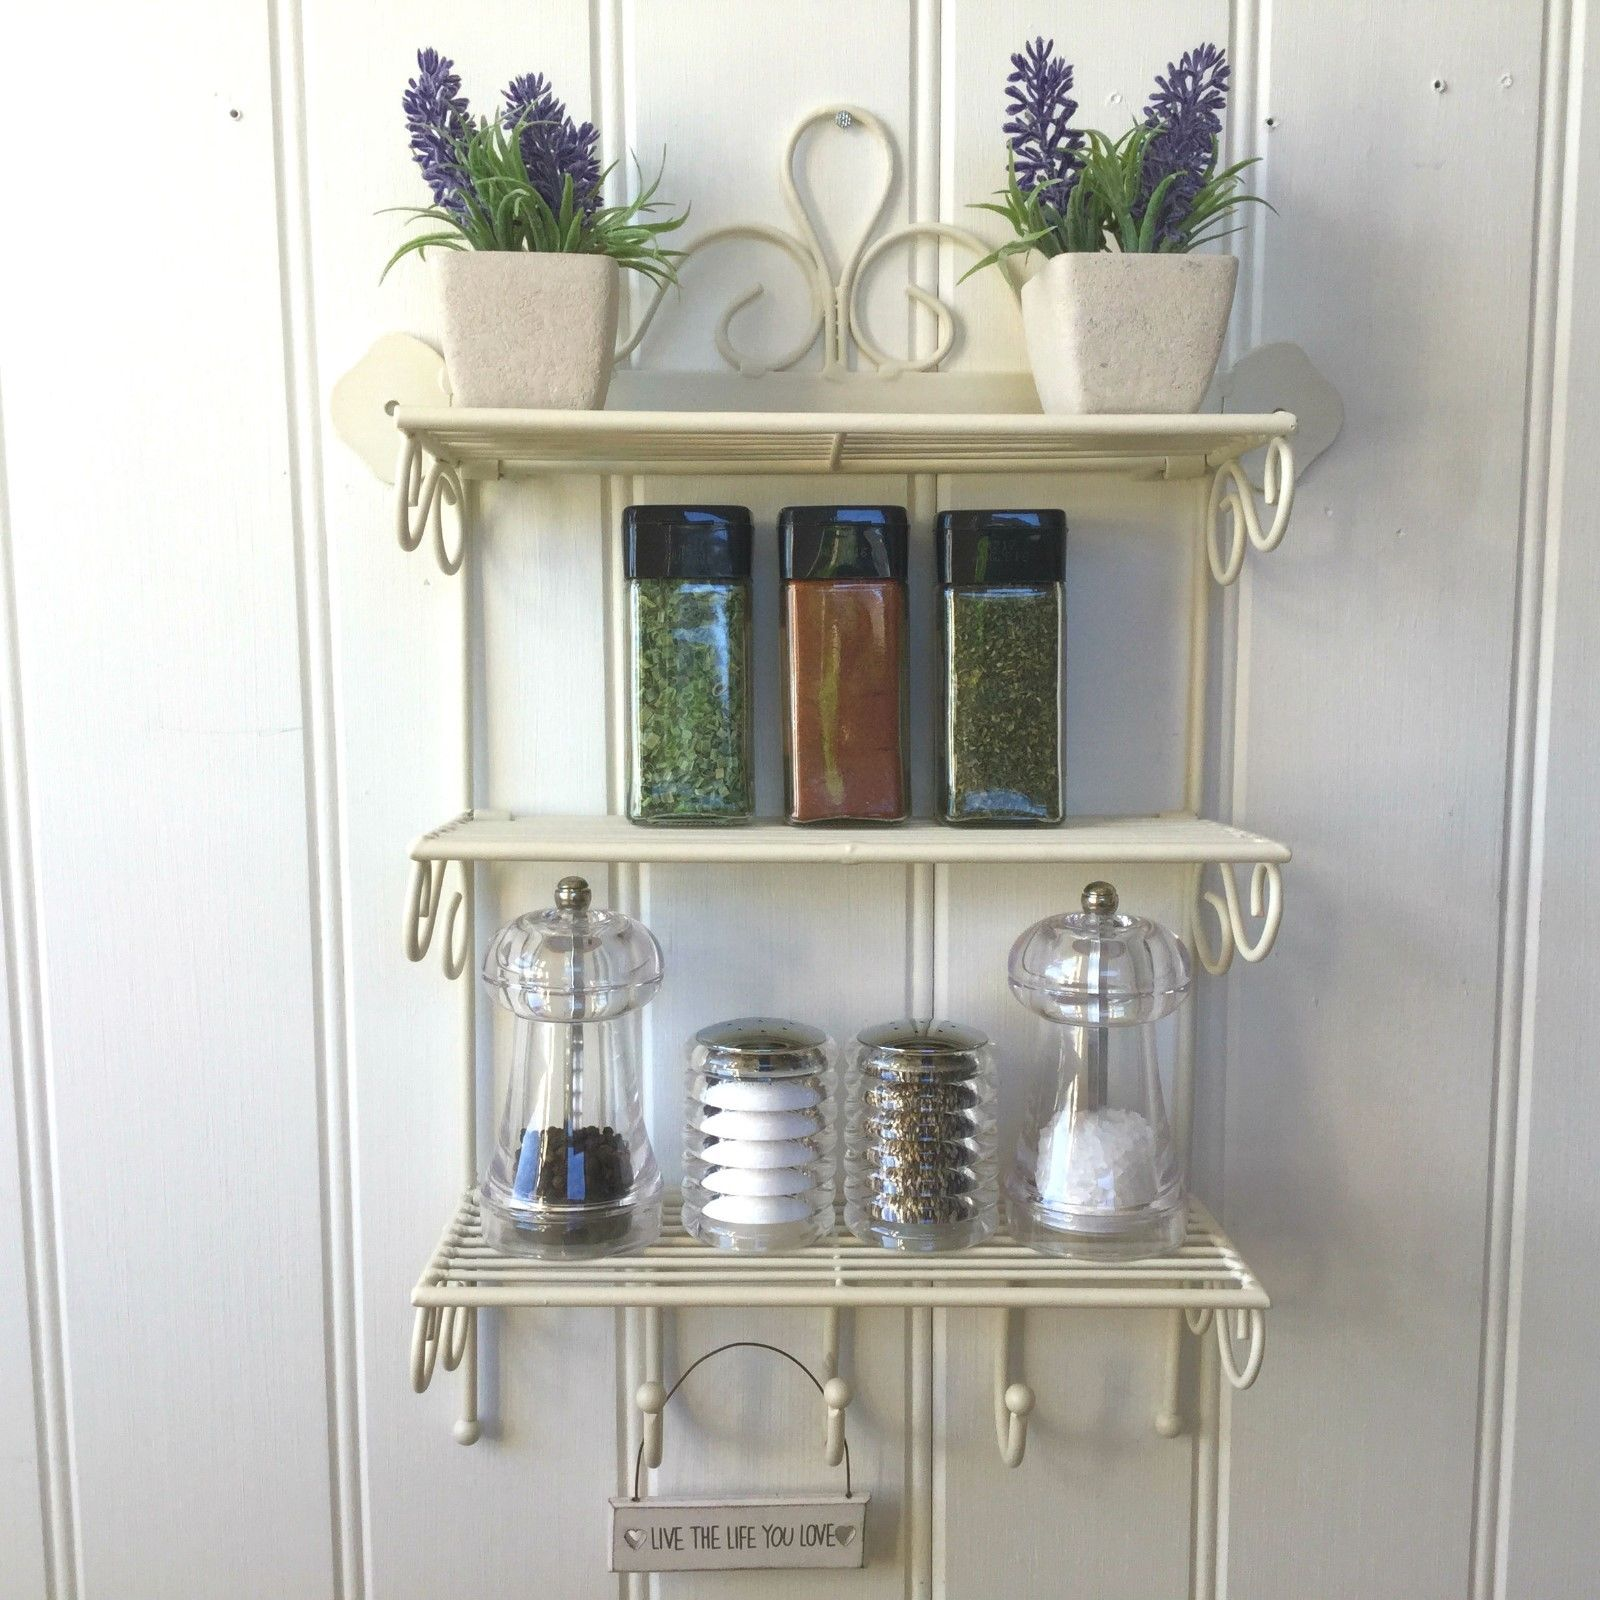 Shabby Chic Metal Wall Shelf Unit Hooks Storage Kitchen